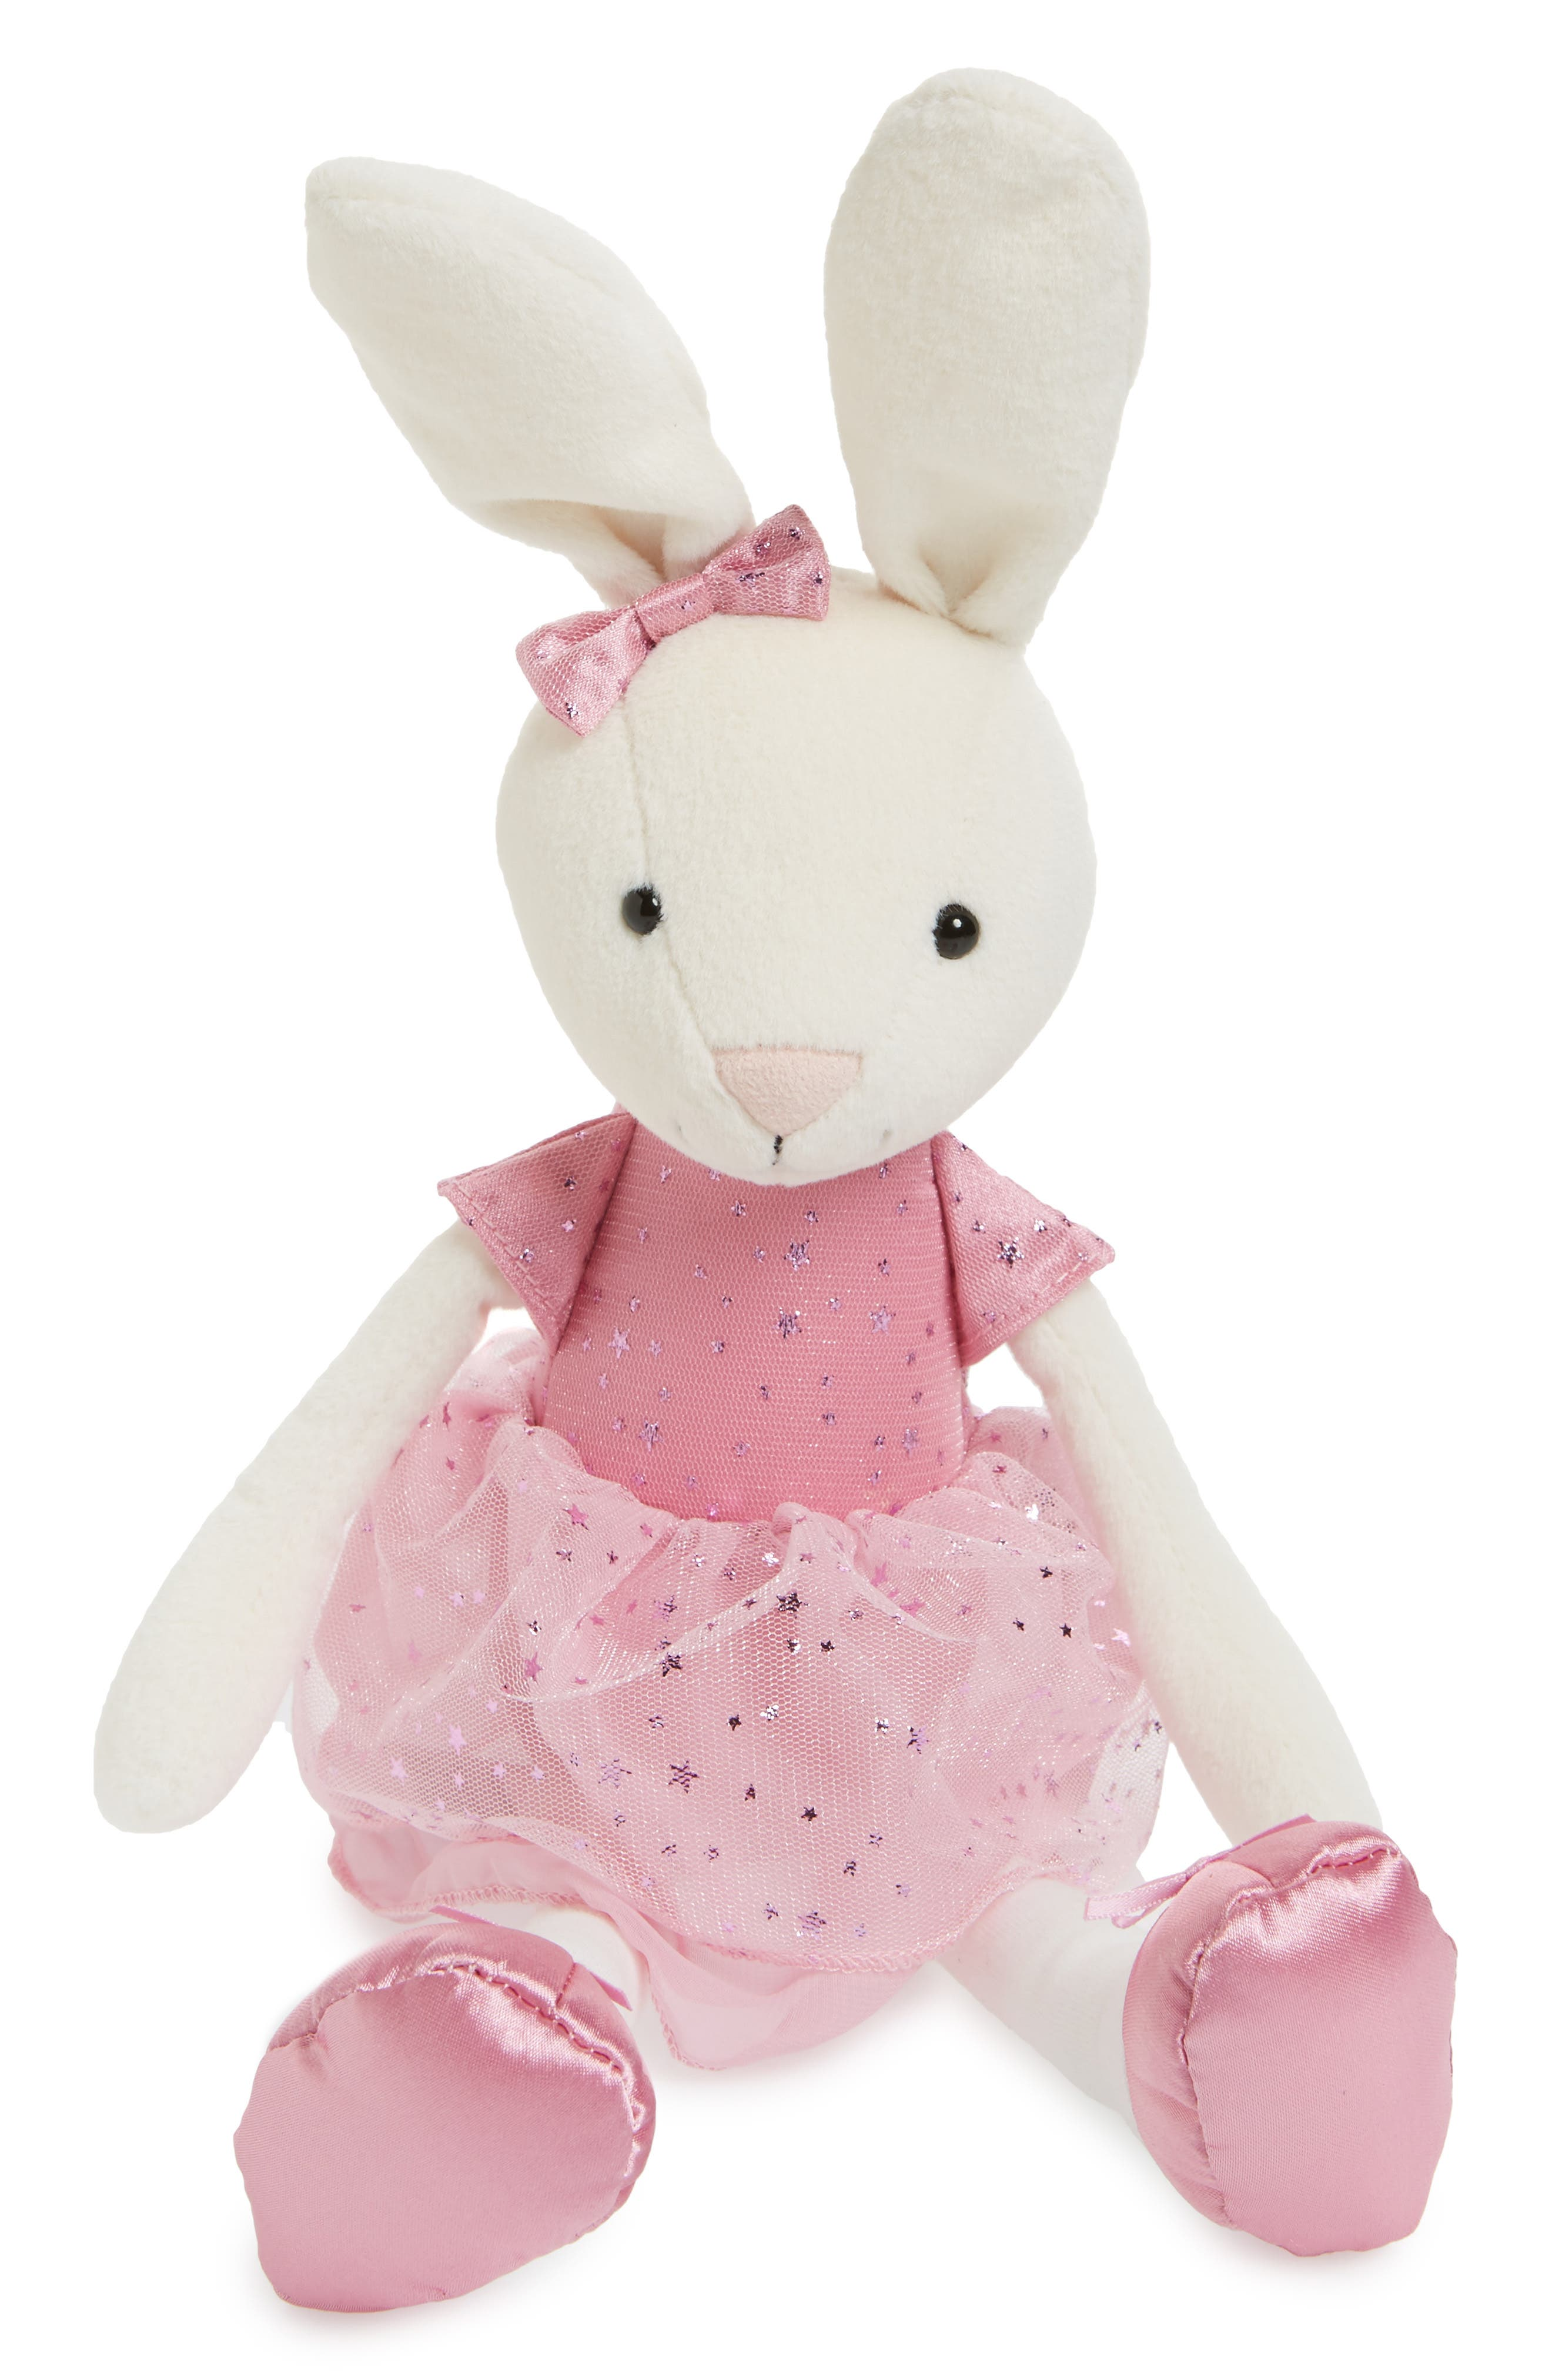 Party Bitsy Bunny Stuffed Animal,                             Main thumbnail 1, color,                             Party